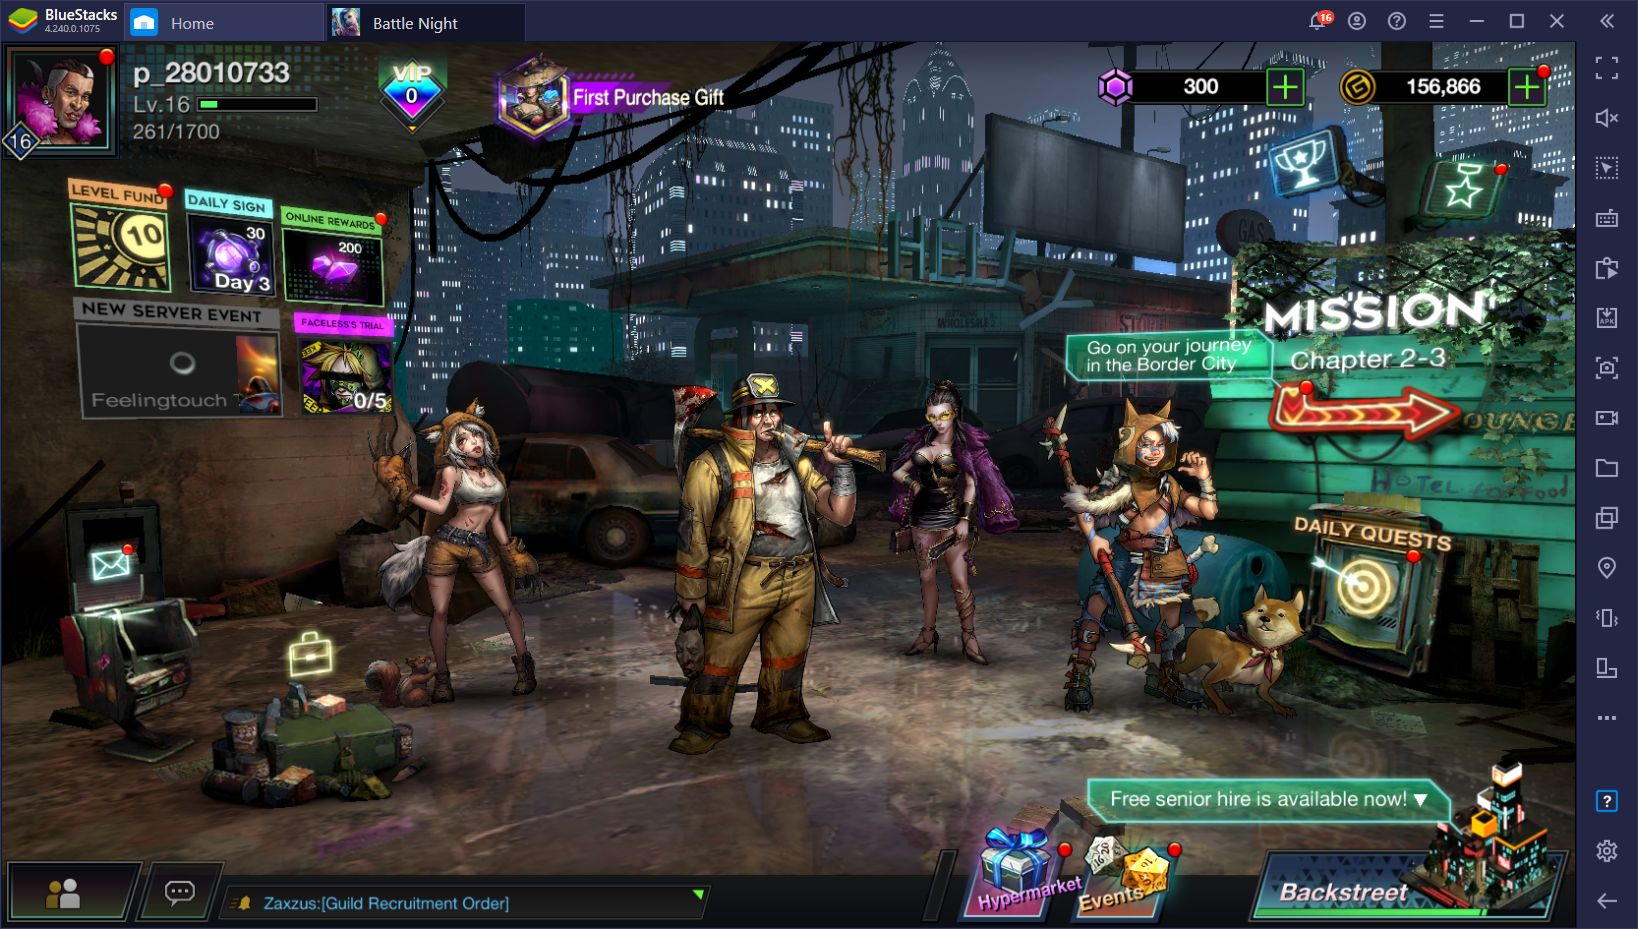 Battle Night: Cyber Squad – How to Install and Play This Cyberpunk-Themed Gacha RPG on BlueStacks